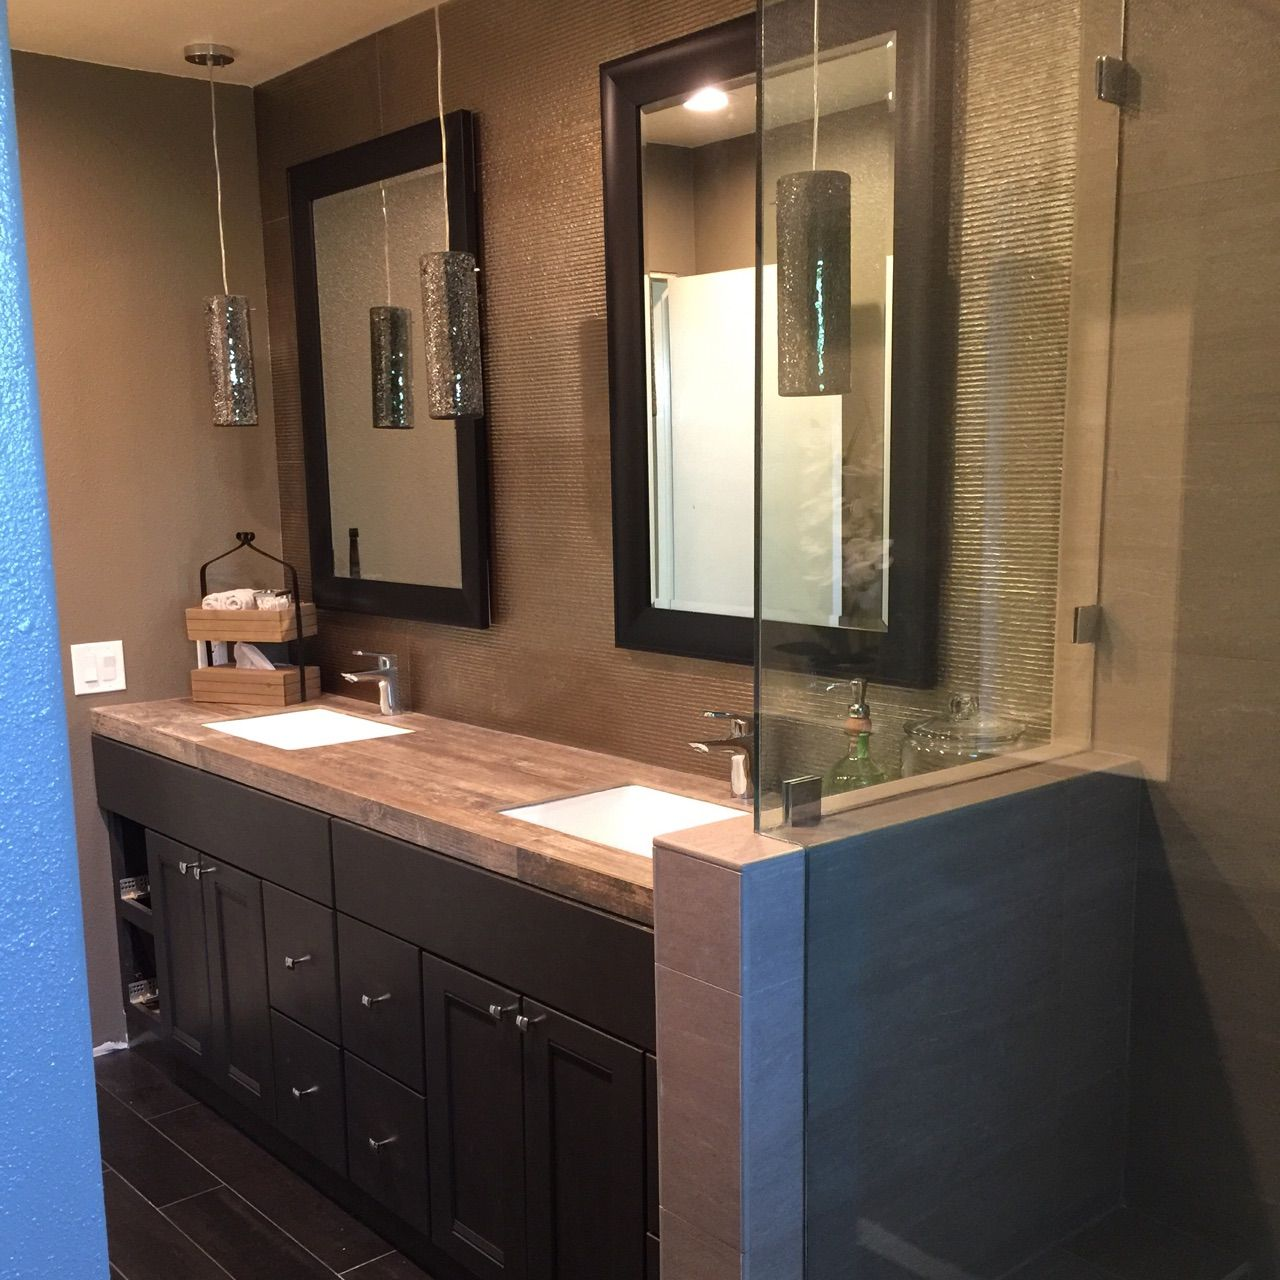 Beautiful bathroom remodel designed by the staff